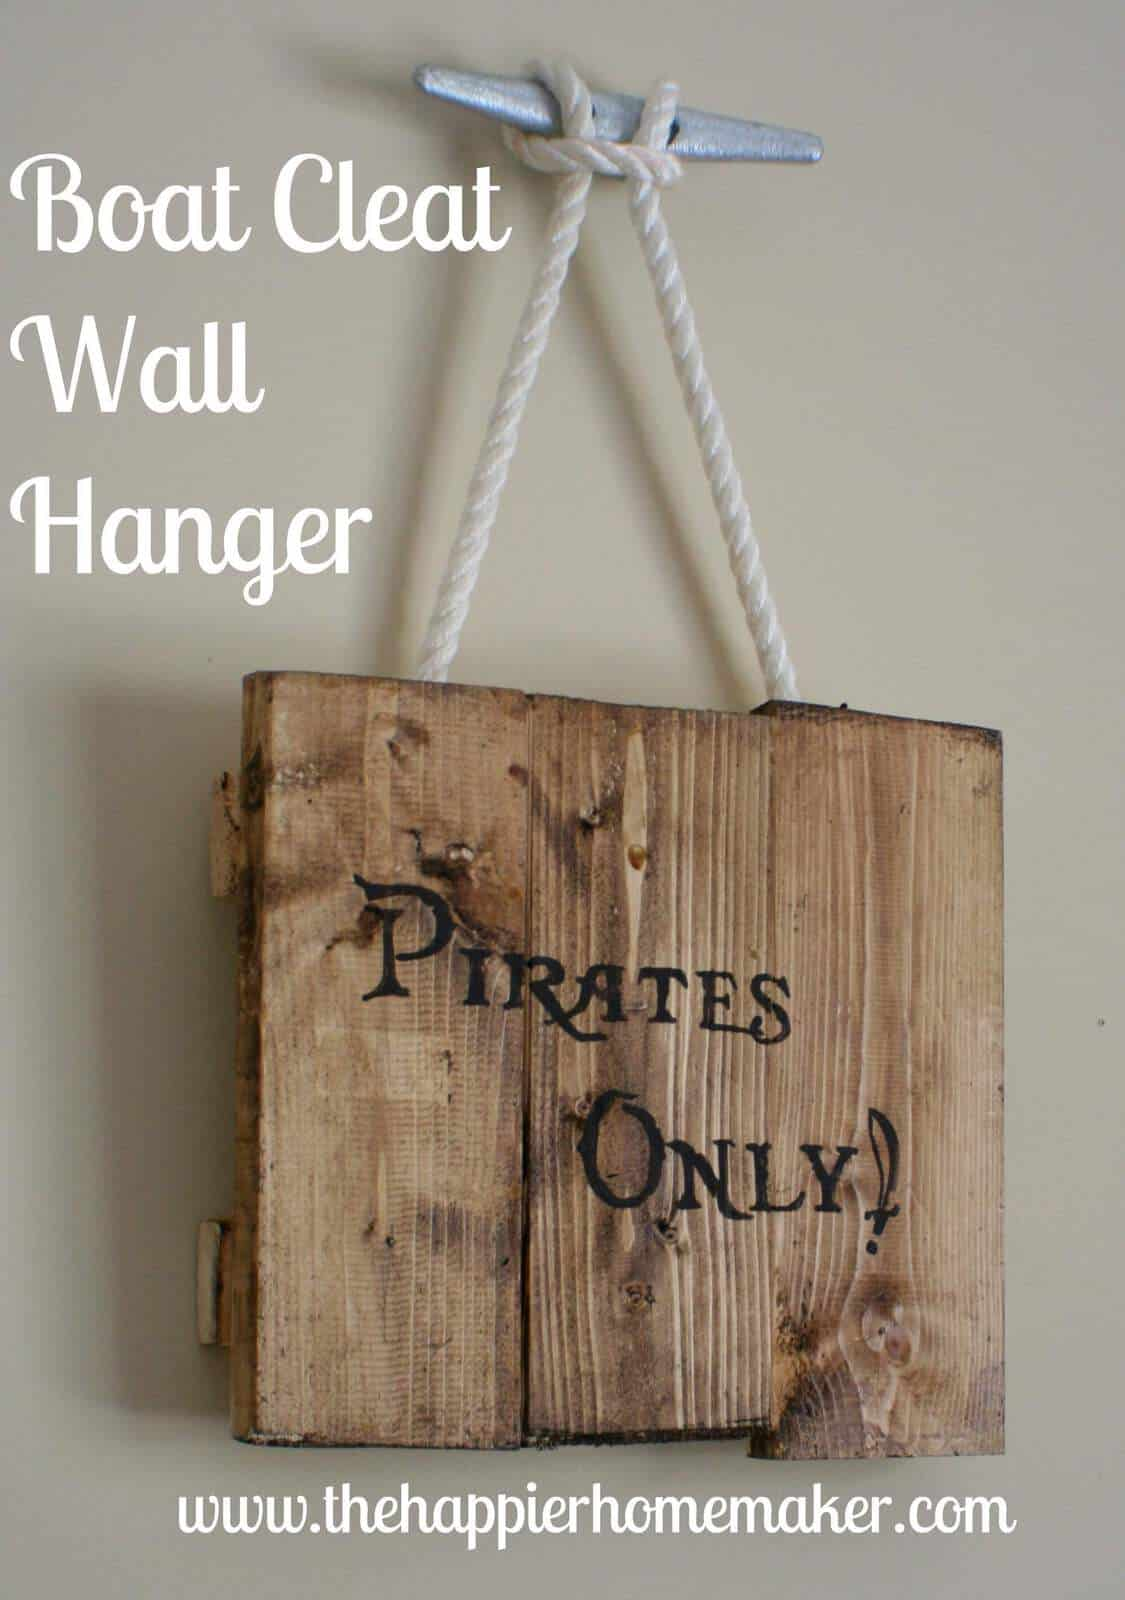 Boat Cleat Wall Hanger